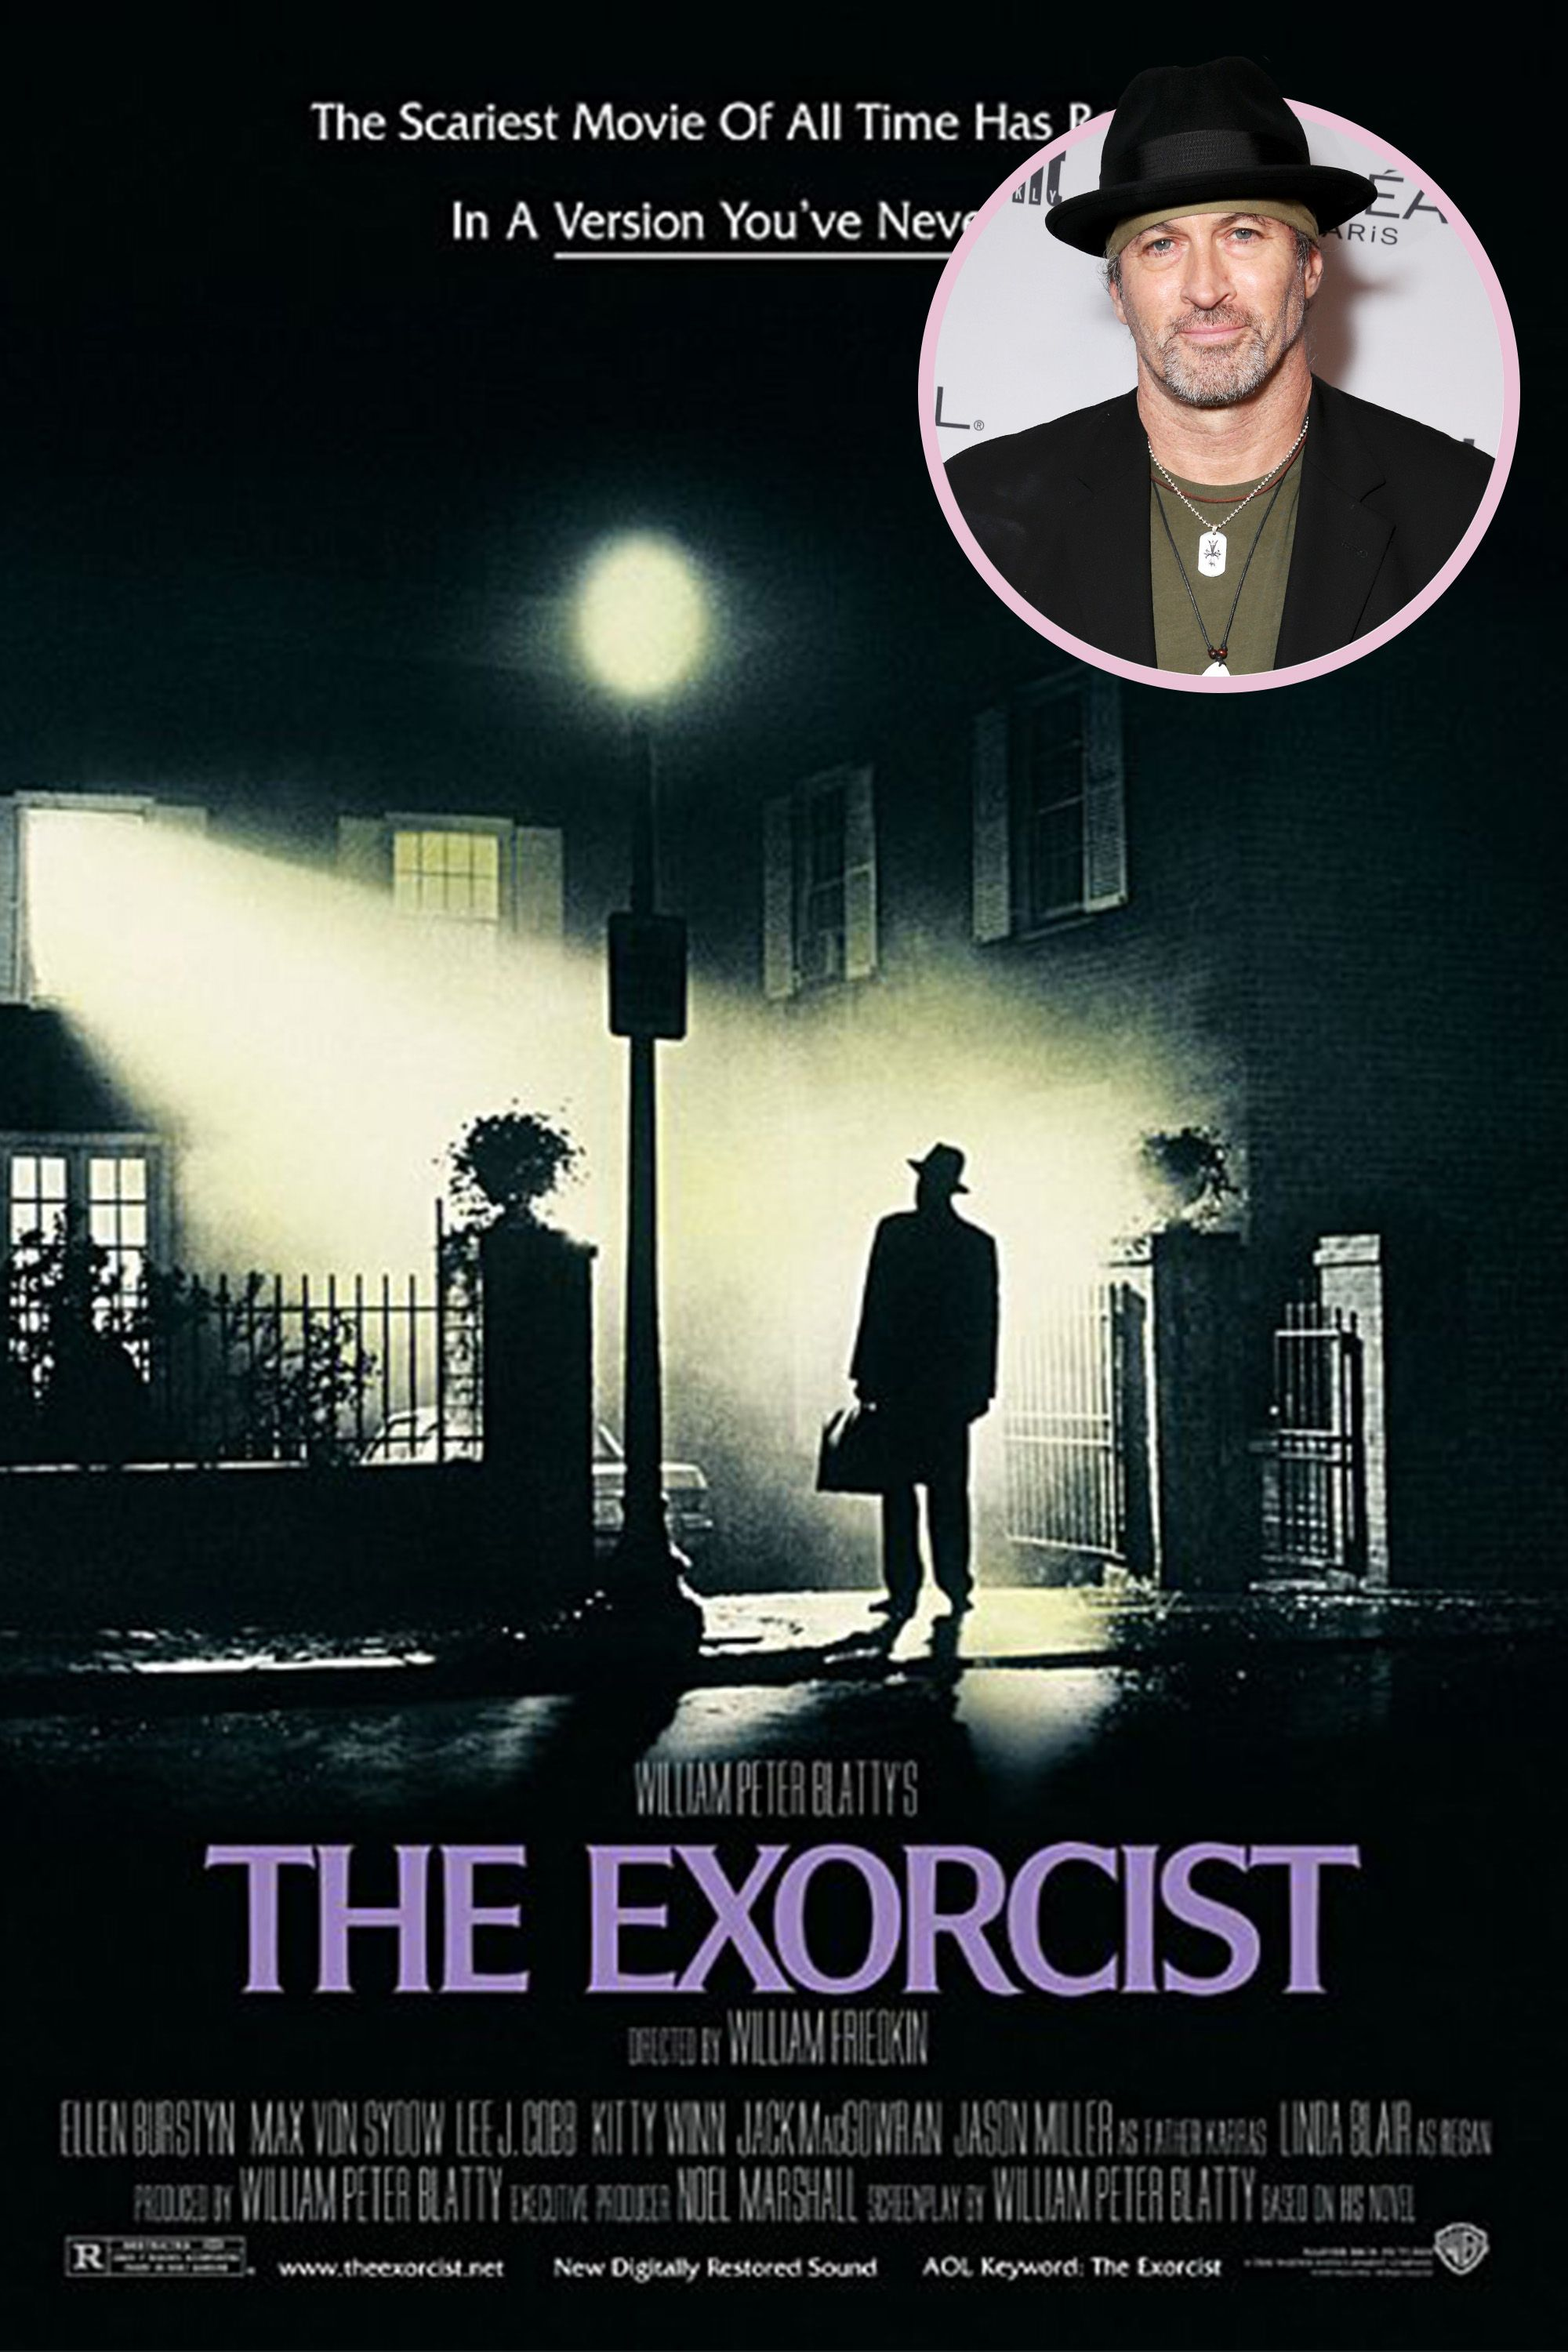 "<p>""It was <em data-redactor-tag=""em"" data-verified=""redactor"">The Exorcist</em>. I went to see it the first day it came out. There was no word of mouth yet about how terrifying it was, so me and my buddies just went. I was very, very young. The four of us were just sitting in that theater turning green. We were terrified. We were so freaked out by that film that we actually stayed that night at my friend's house because he was Catholic. We slept downstairs in his den with his German shepherd and we thought we would be protected.""<br></p>"